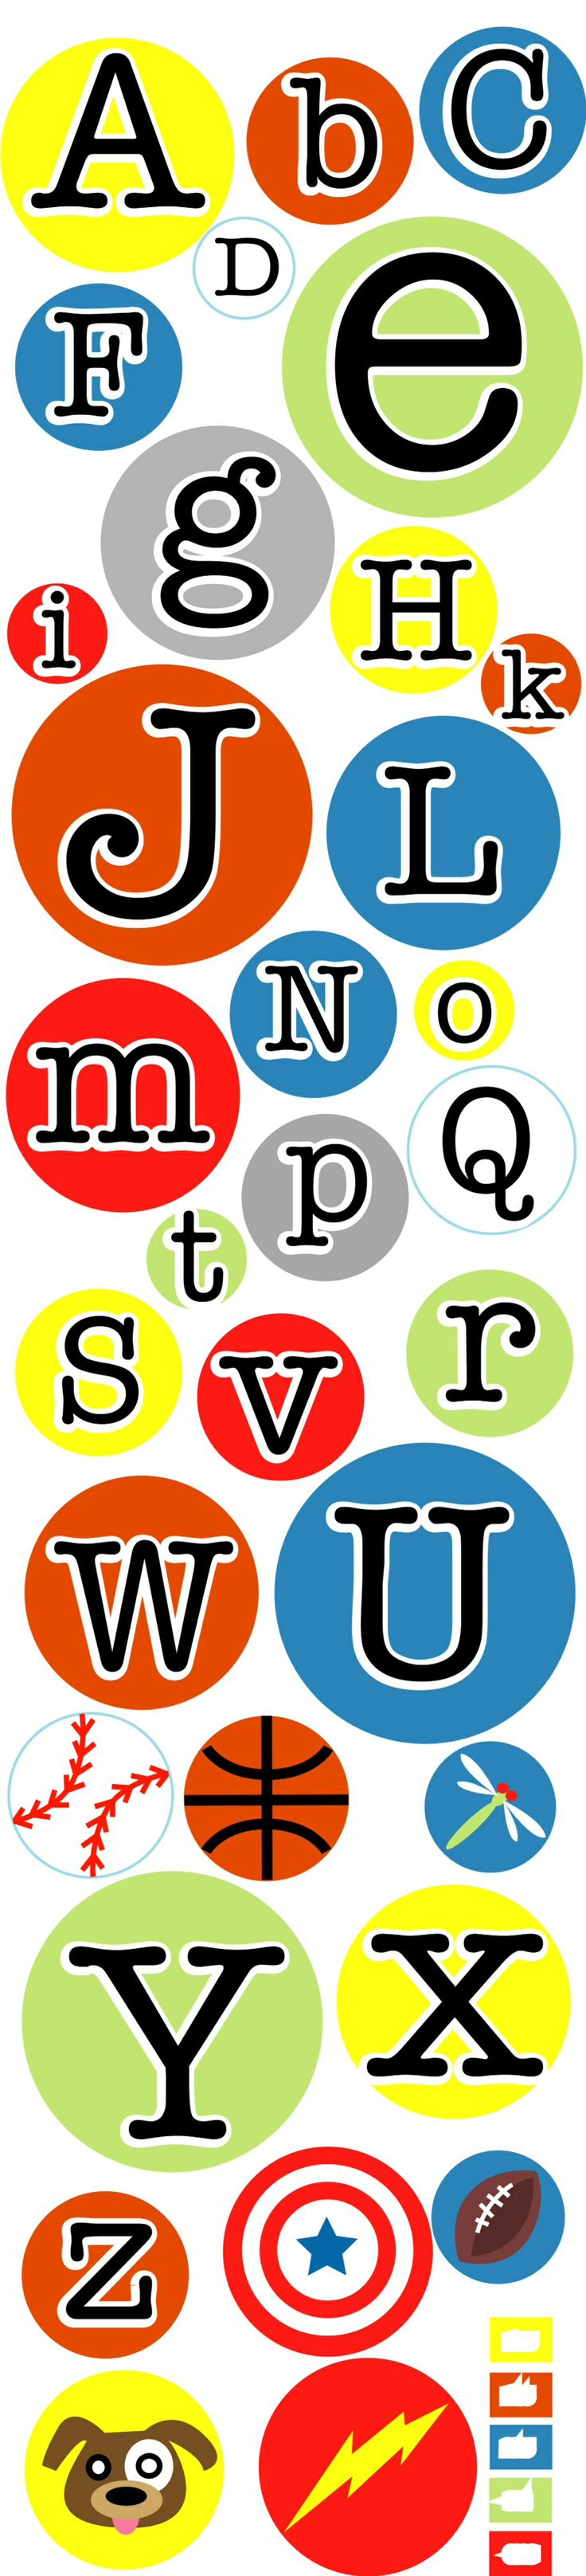 """Fun alphabet decals available at www.etsy.com/shop/AnitaRoll. The circles are 6, 10, 14 and 18"""" in diameter. Printed on repositionable fabric. Great for playrooms and bedrooms scattered around the room in a loose border.  Other pictures can be used in place of the sport themes."""